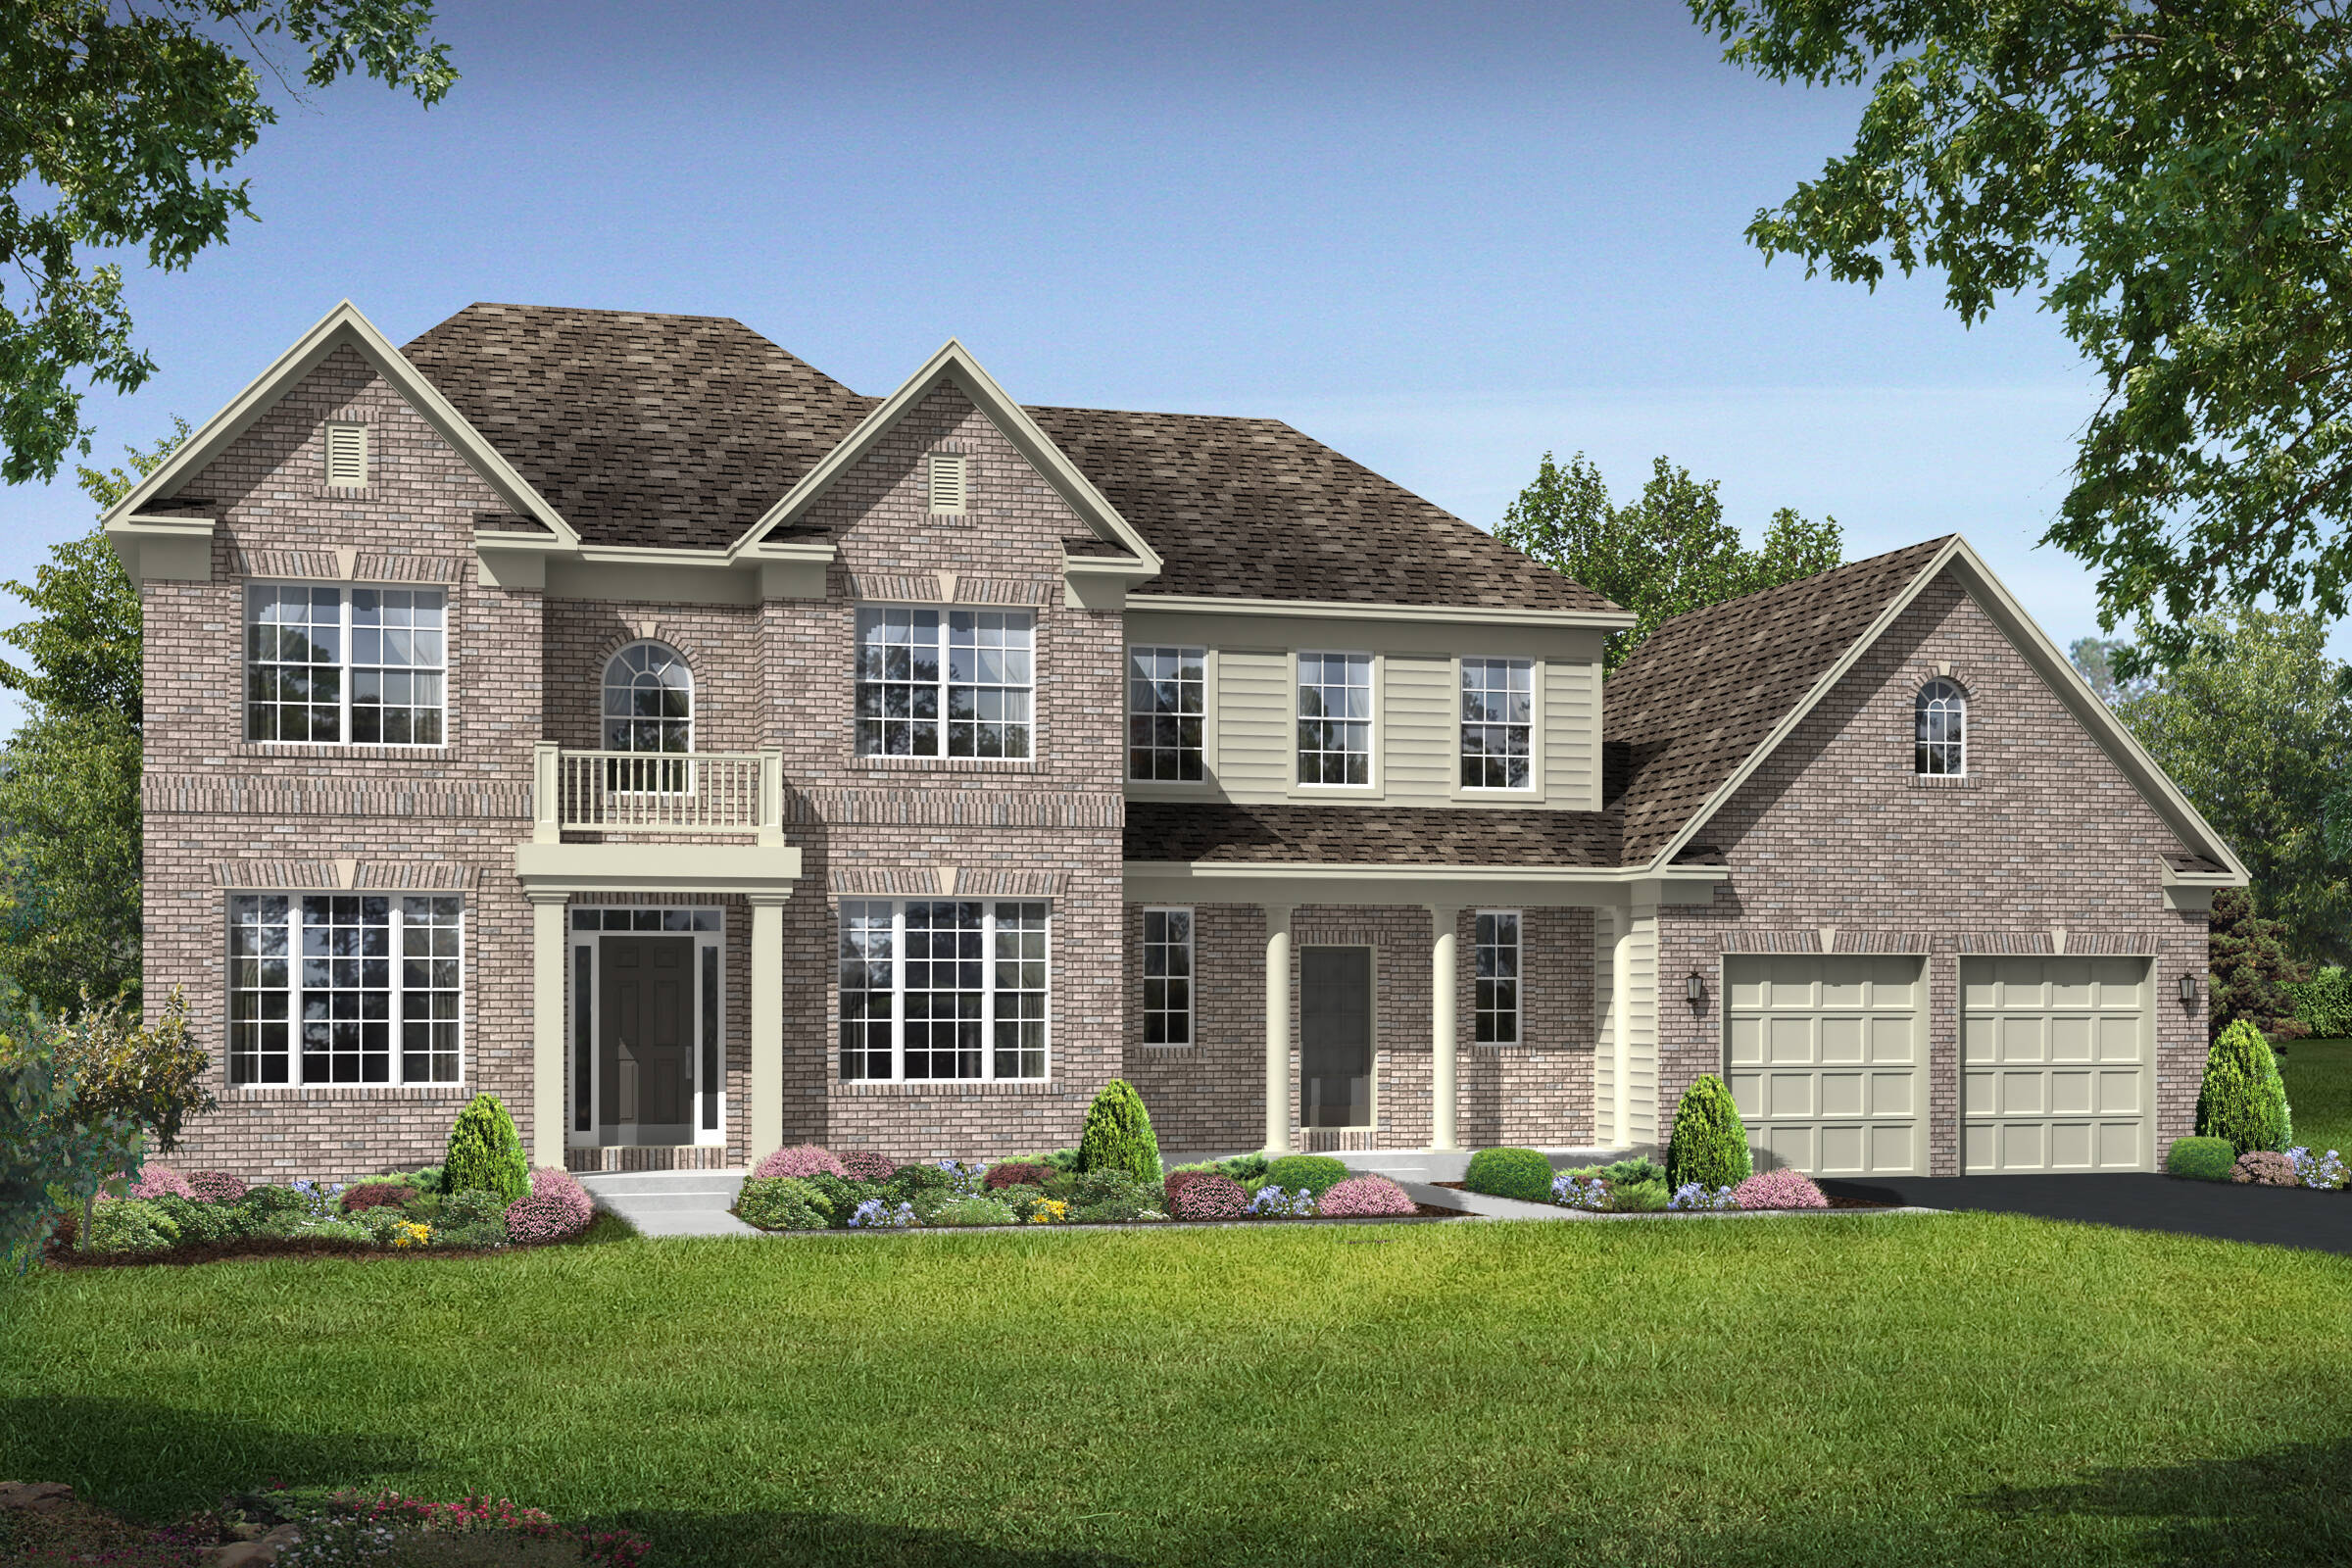 albany dbs new homes at reserves at leeland station in virginia